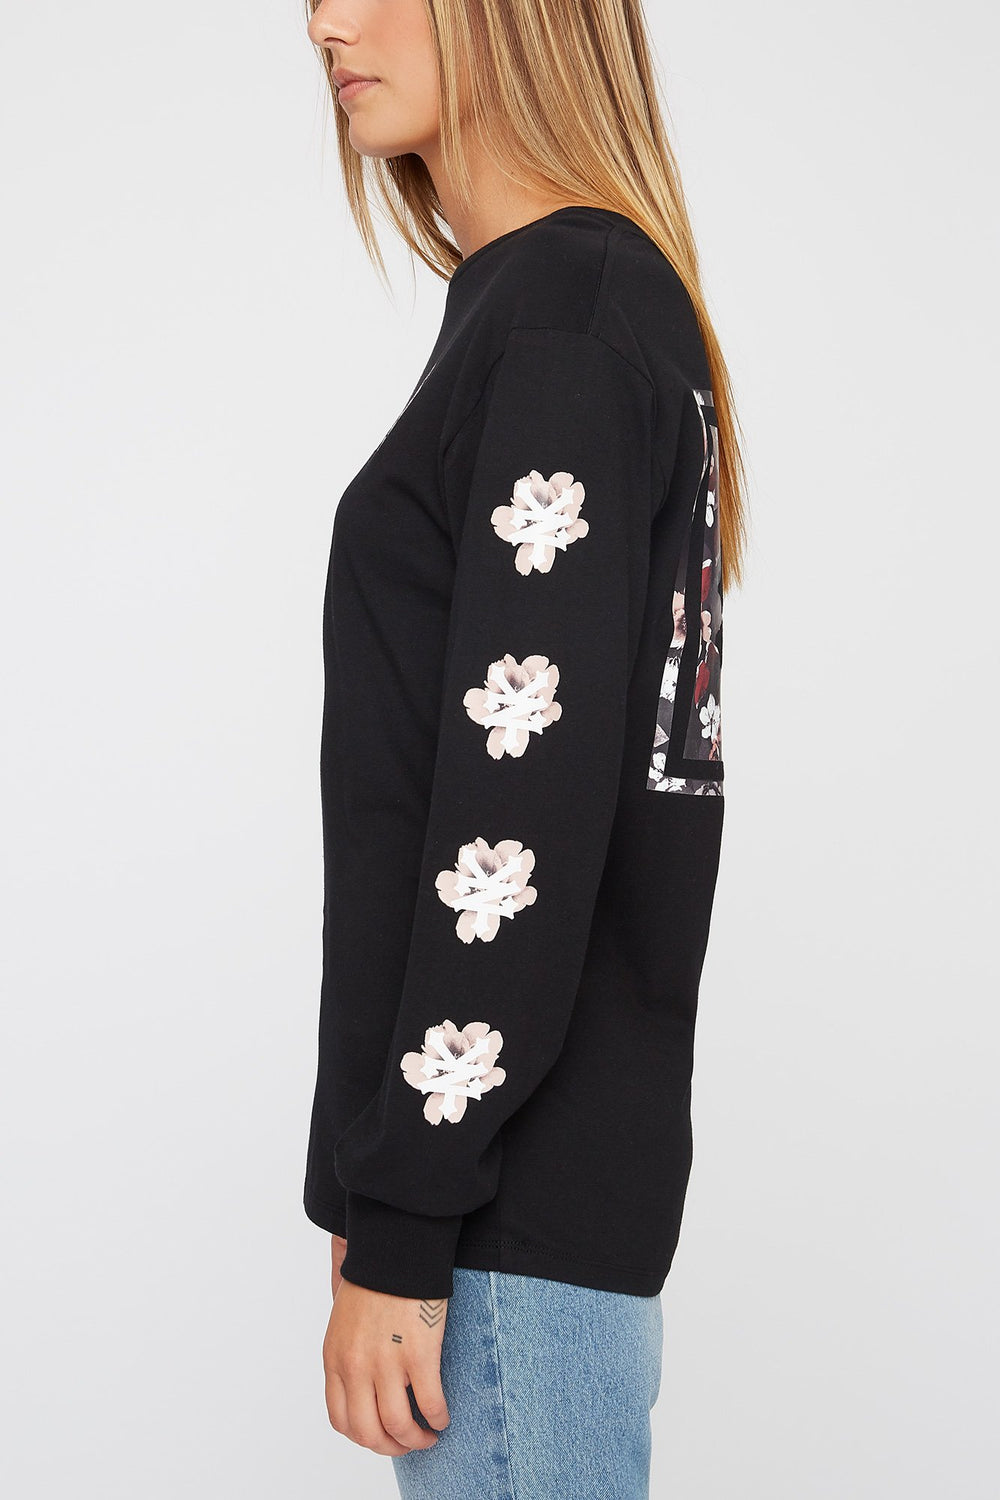 Zoo York Womens Floral Long Sleeve Shirt Black